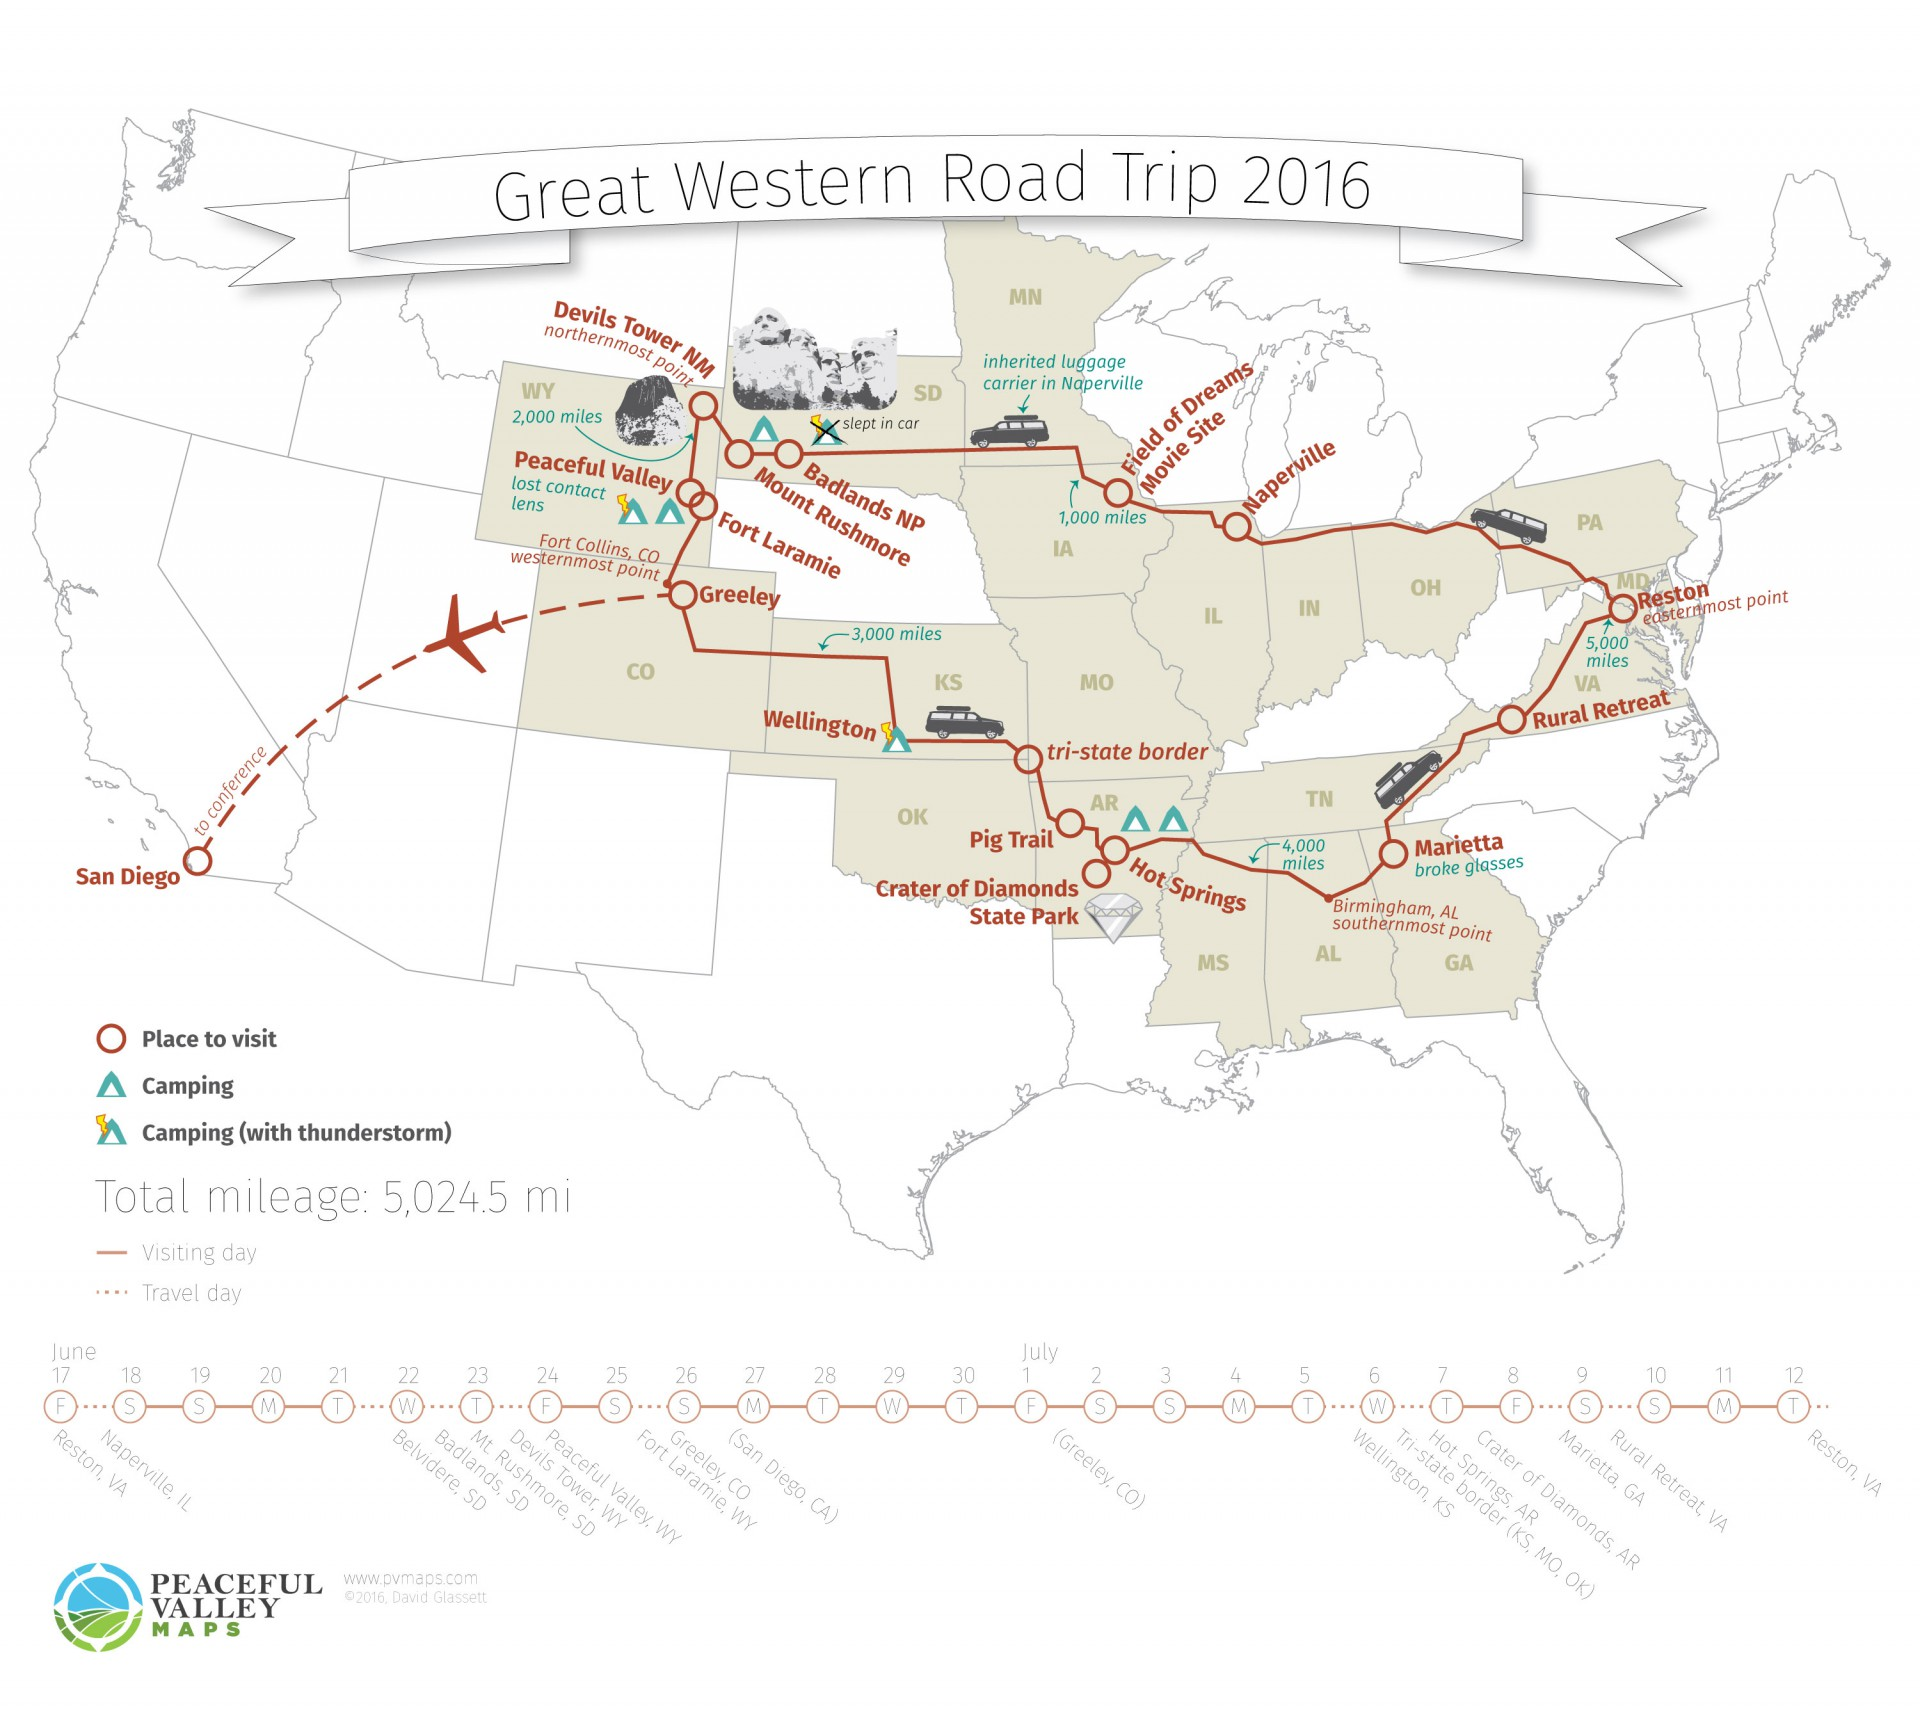 2016 Great Western Road Trip